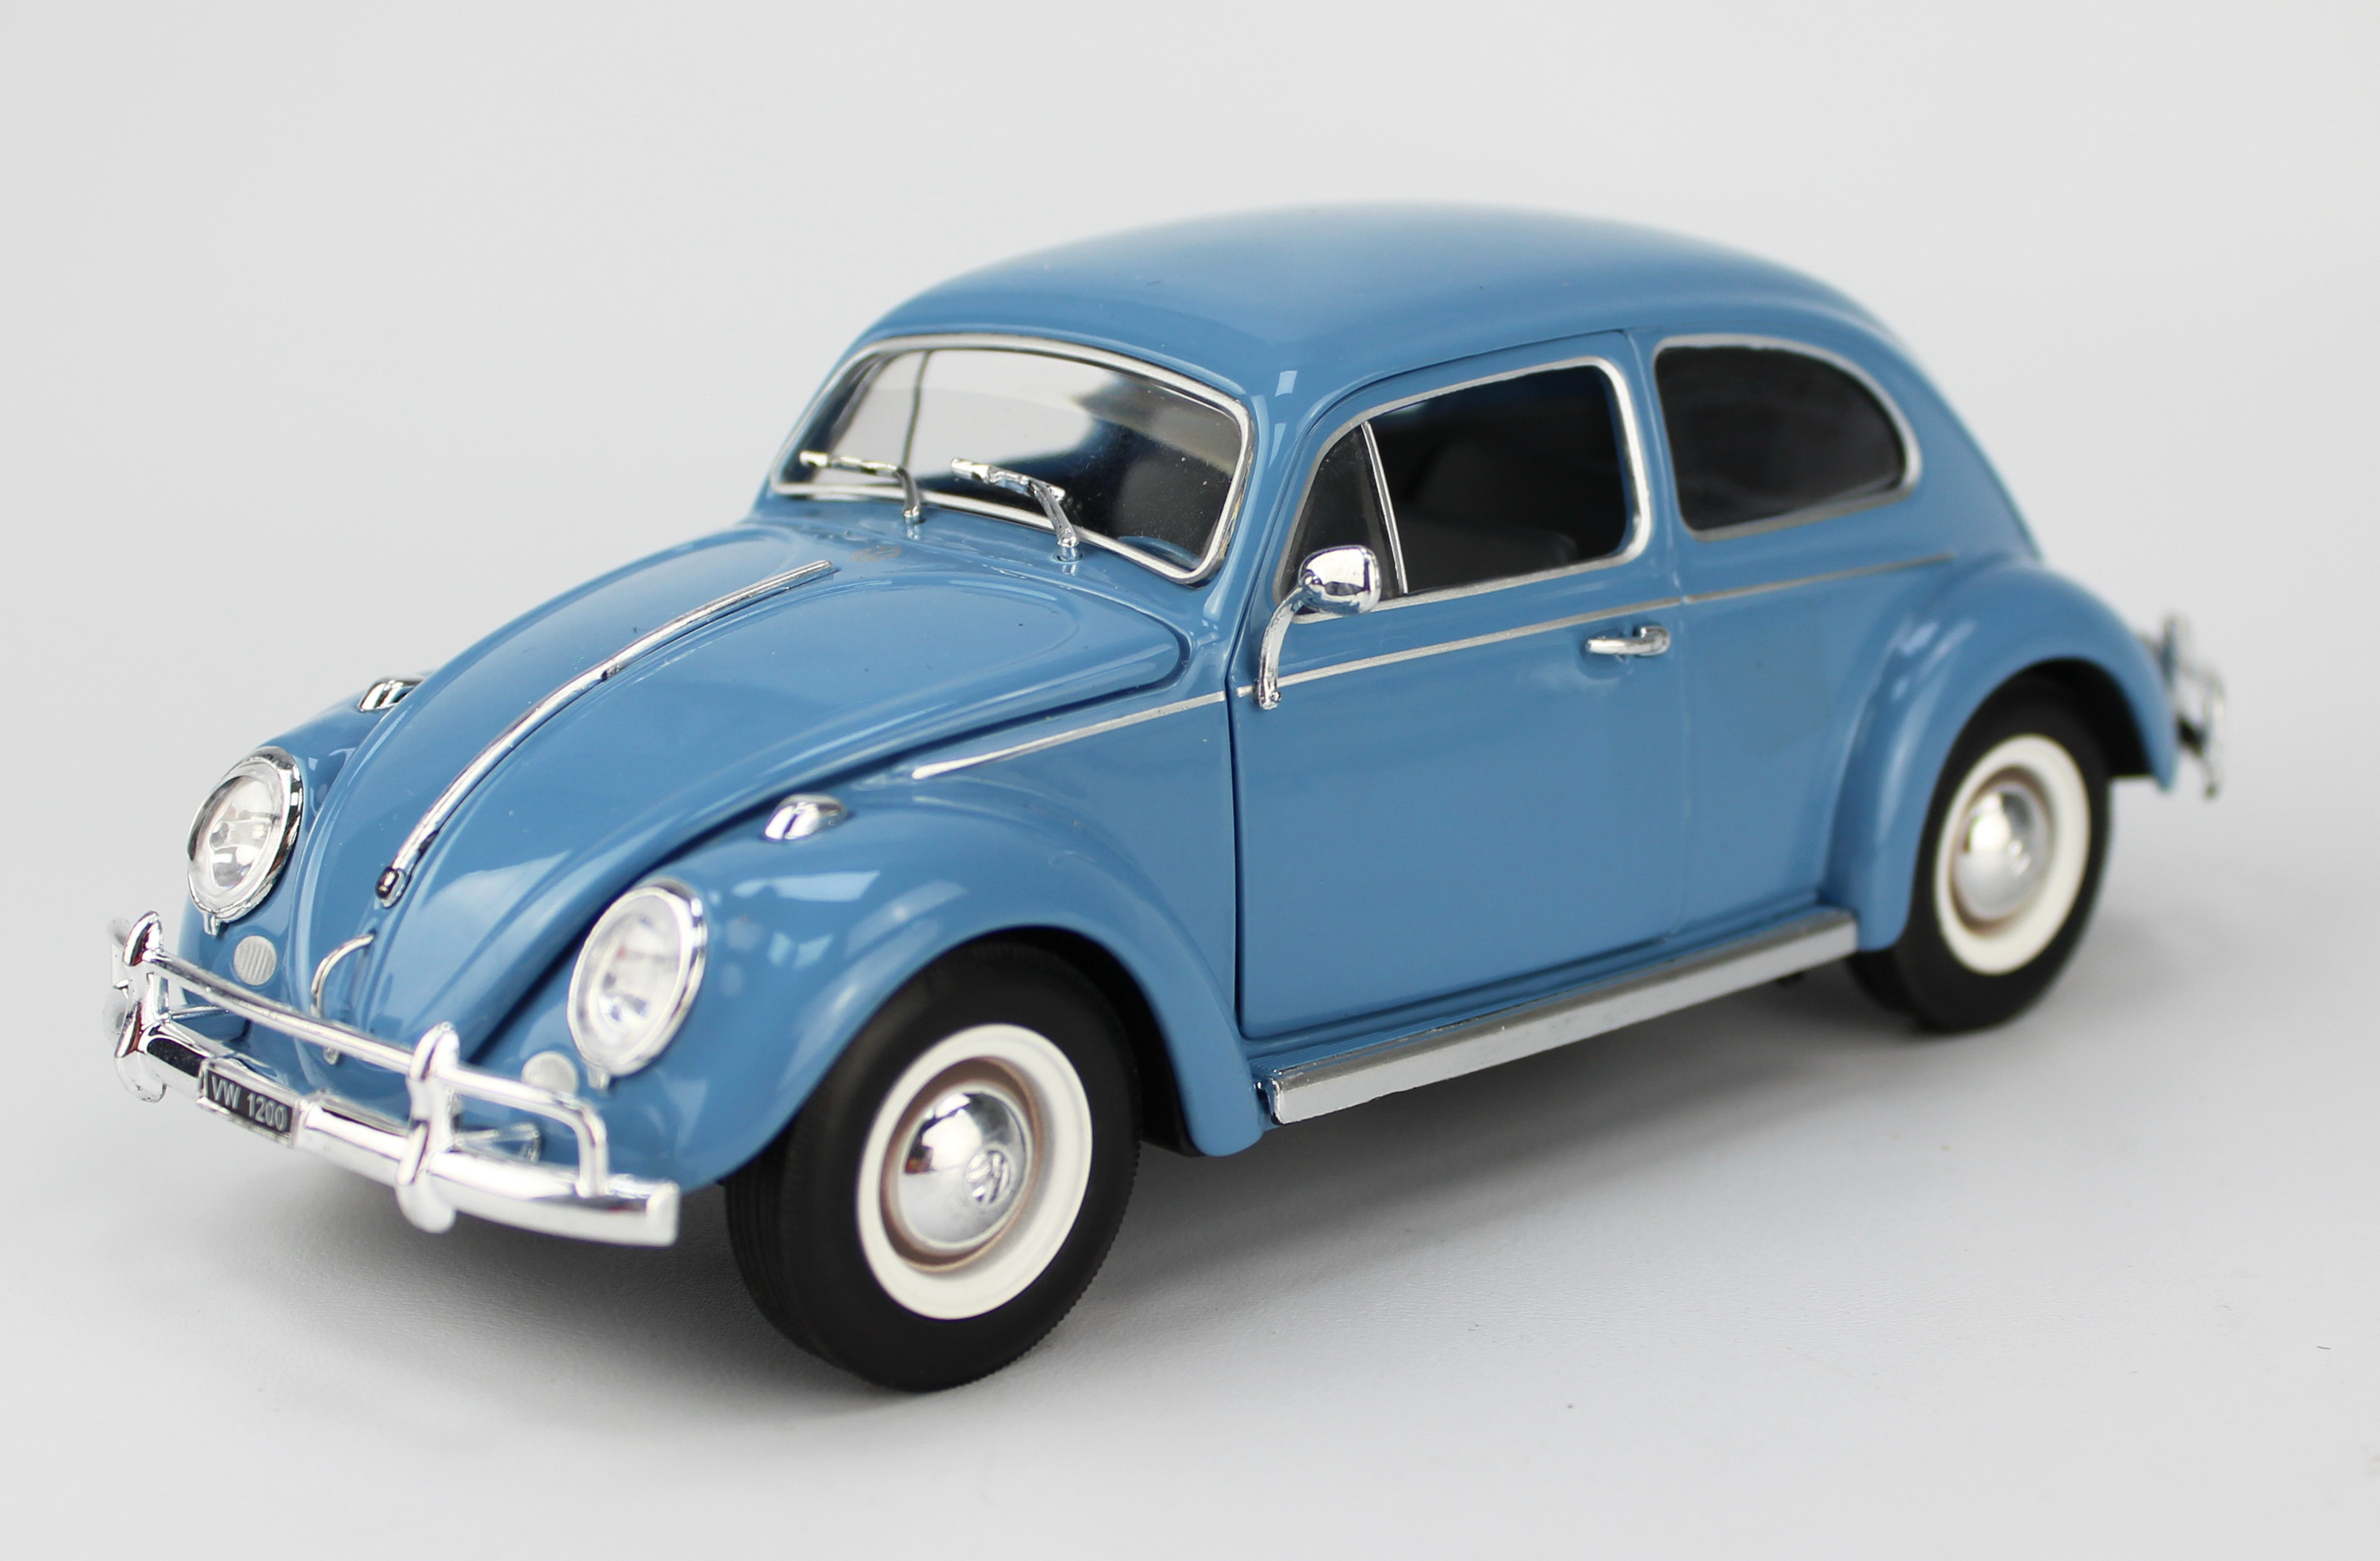 Best sale vintage car Volkswagen Beetle 1200